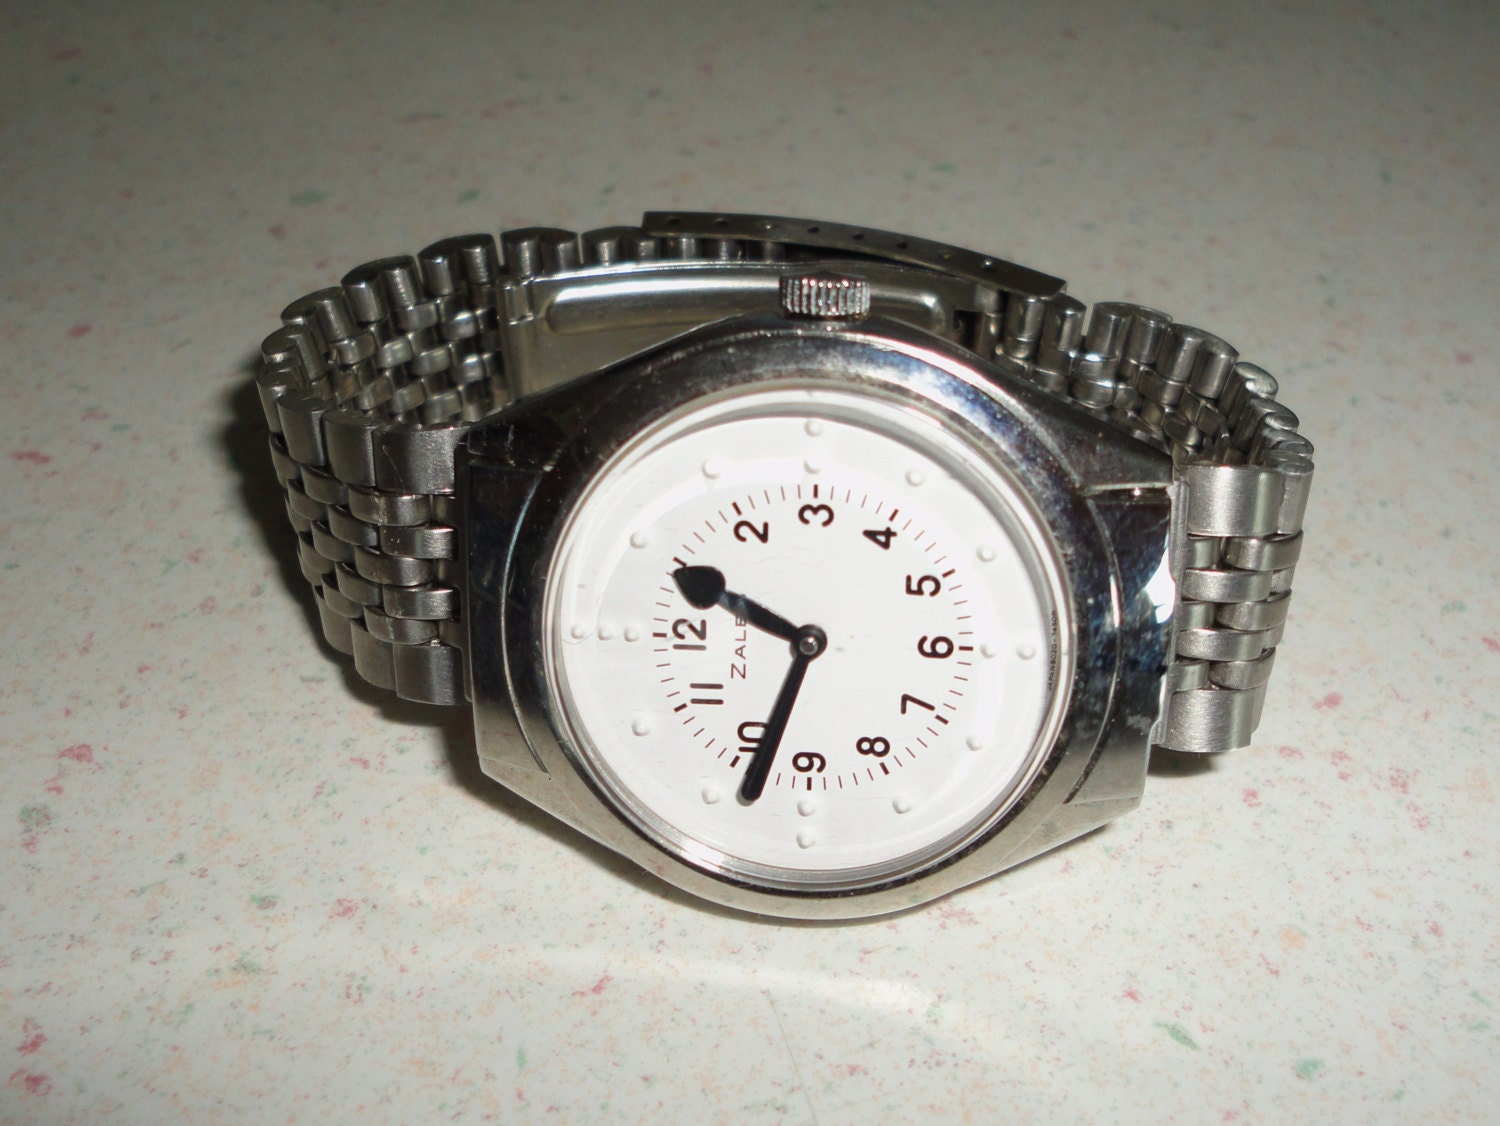 Zales braille watch for blind men 39 s watch with flip top for Watches zales